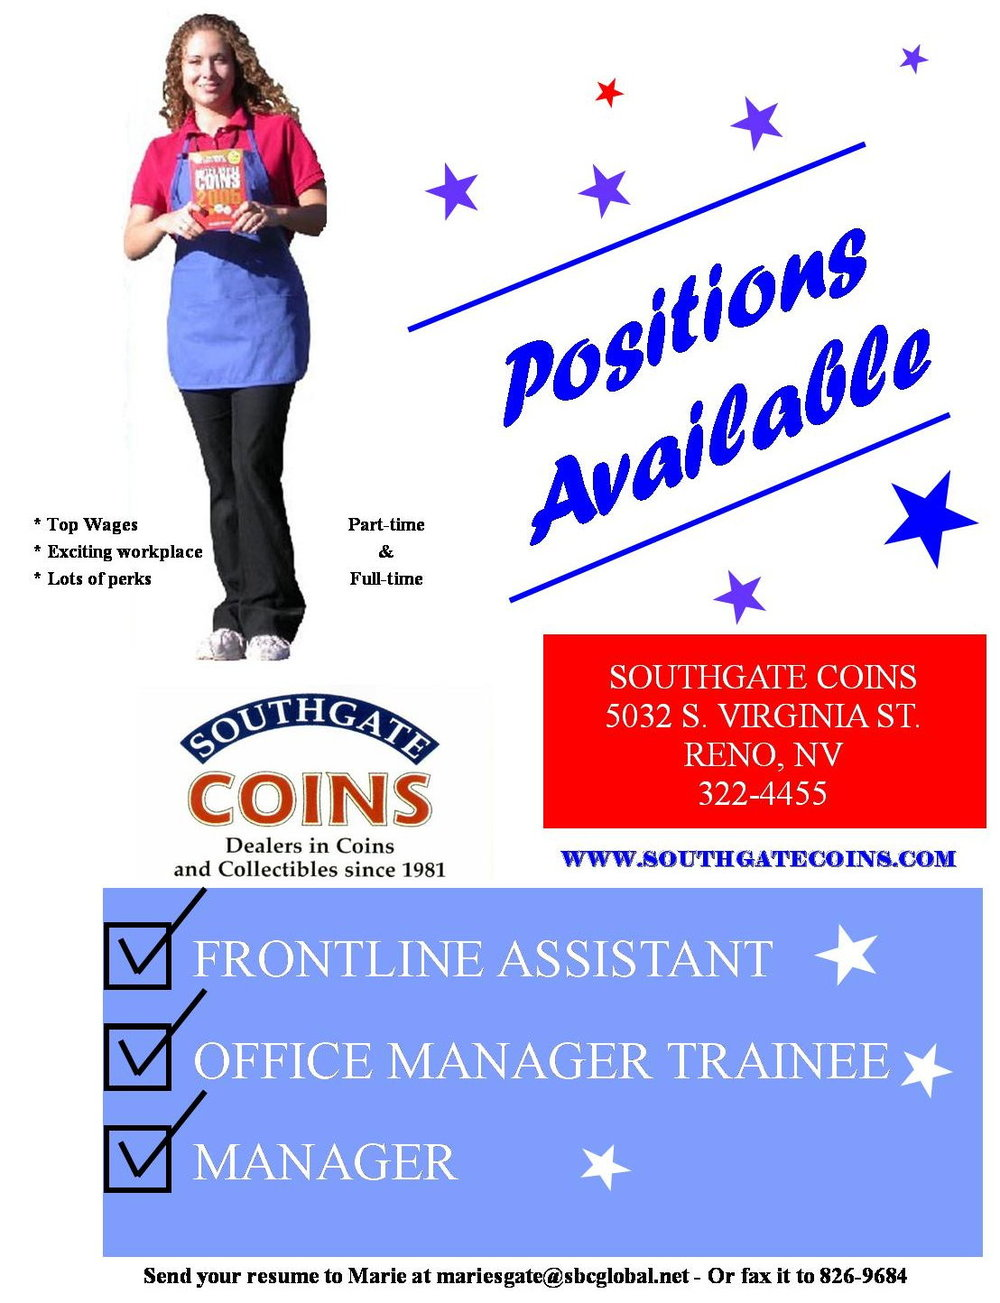 Heather acts as the poster child for Southgate Coins hiring campaign